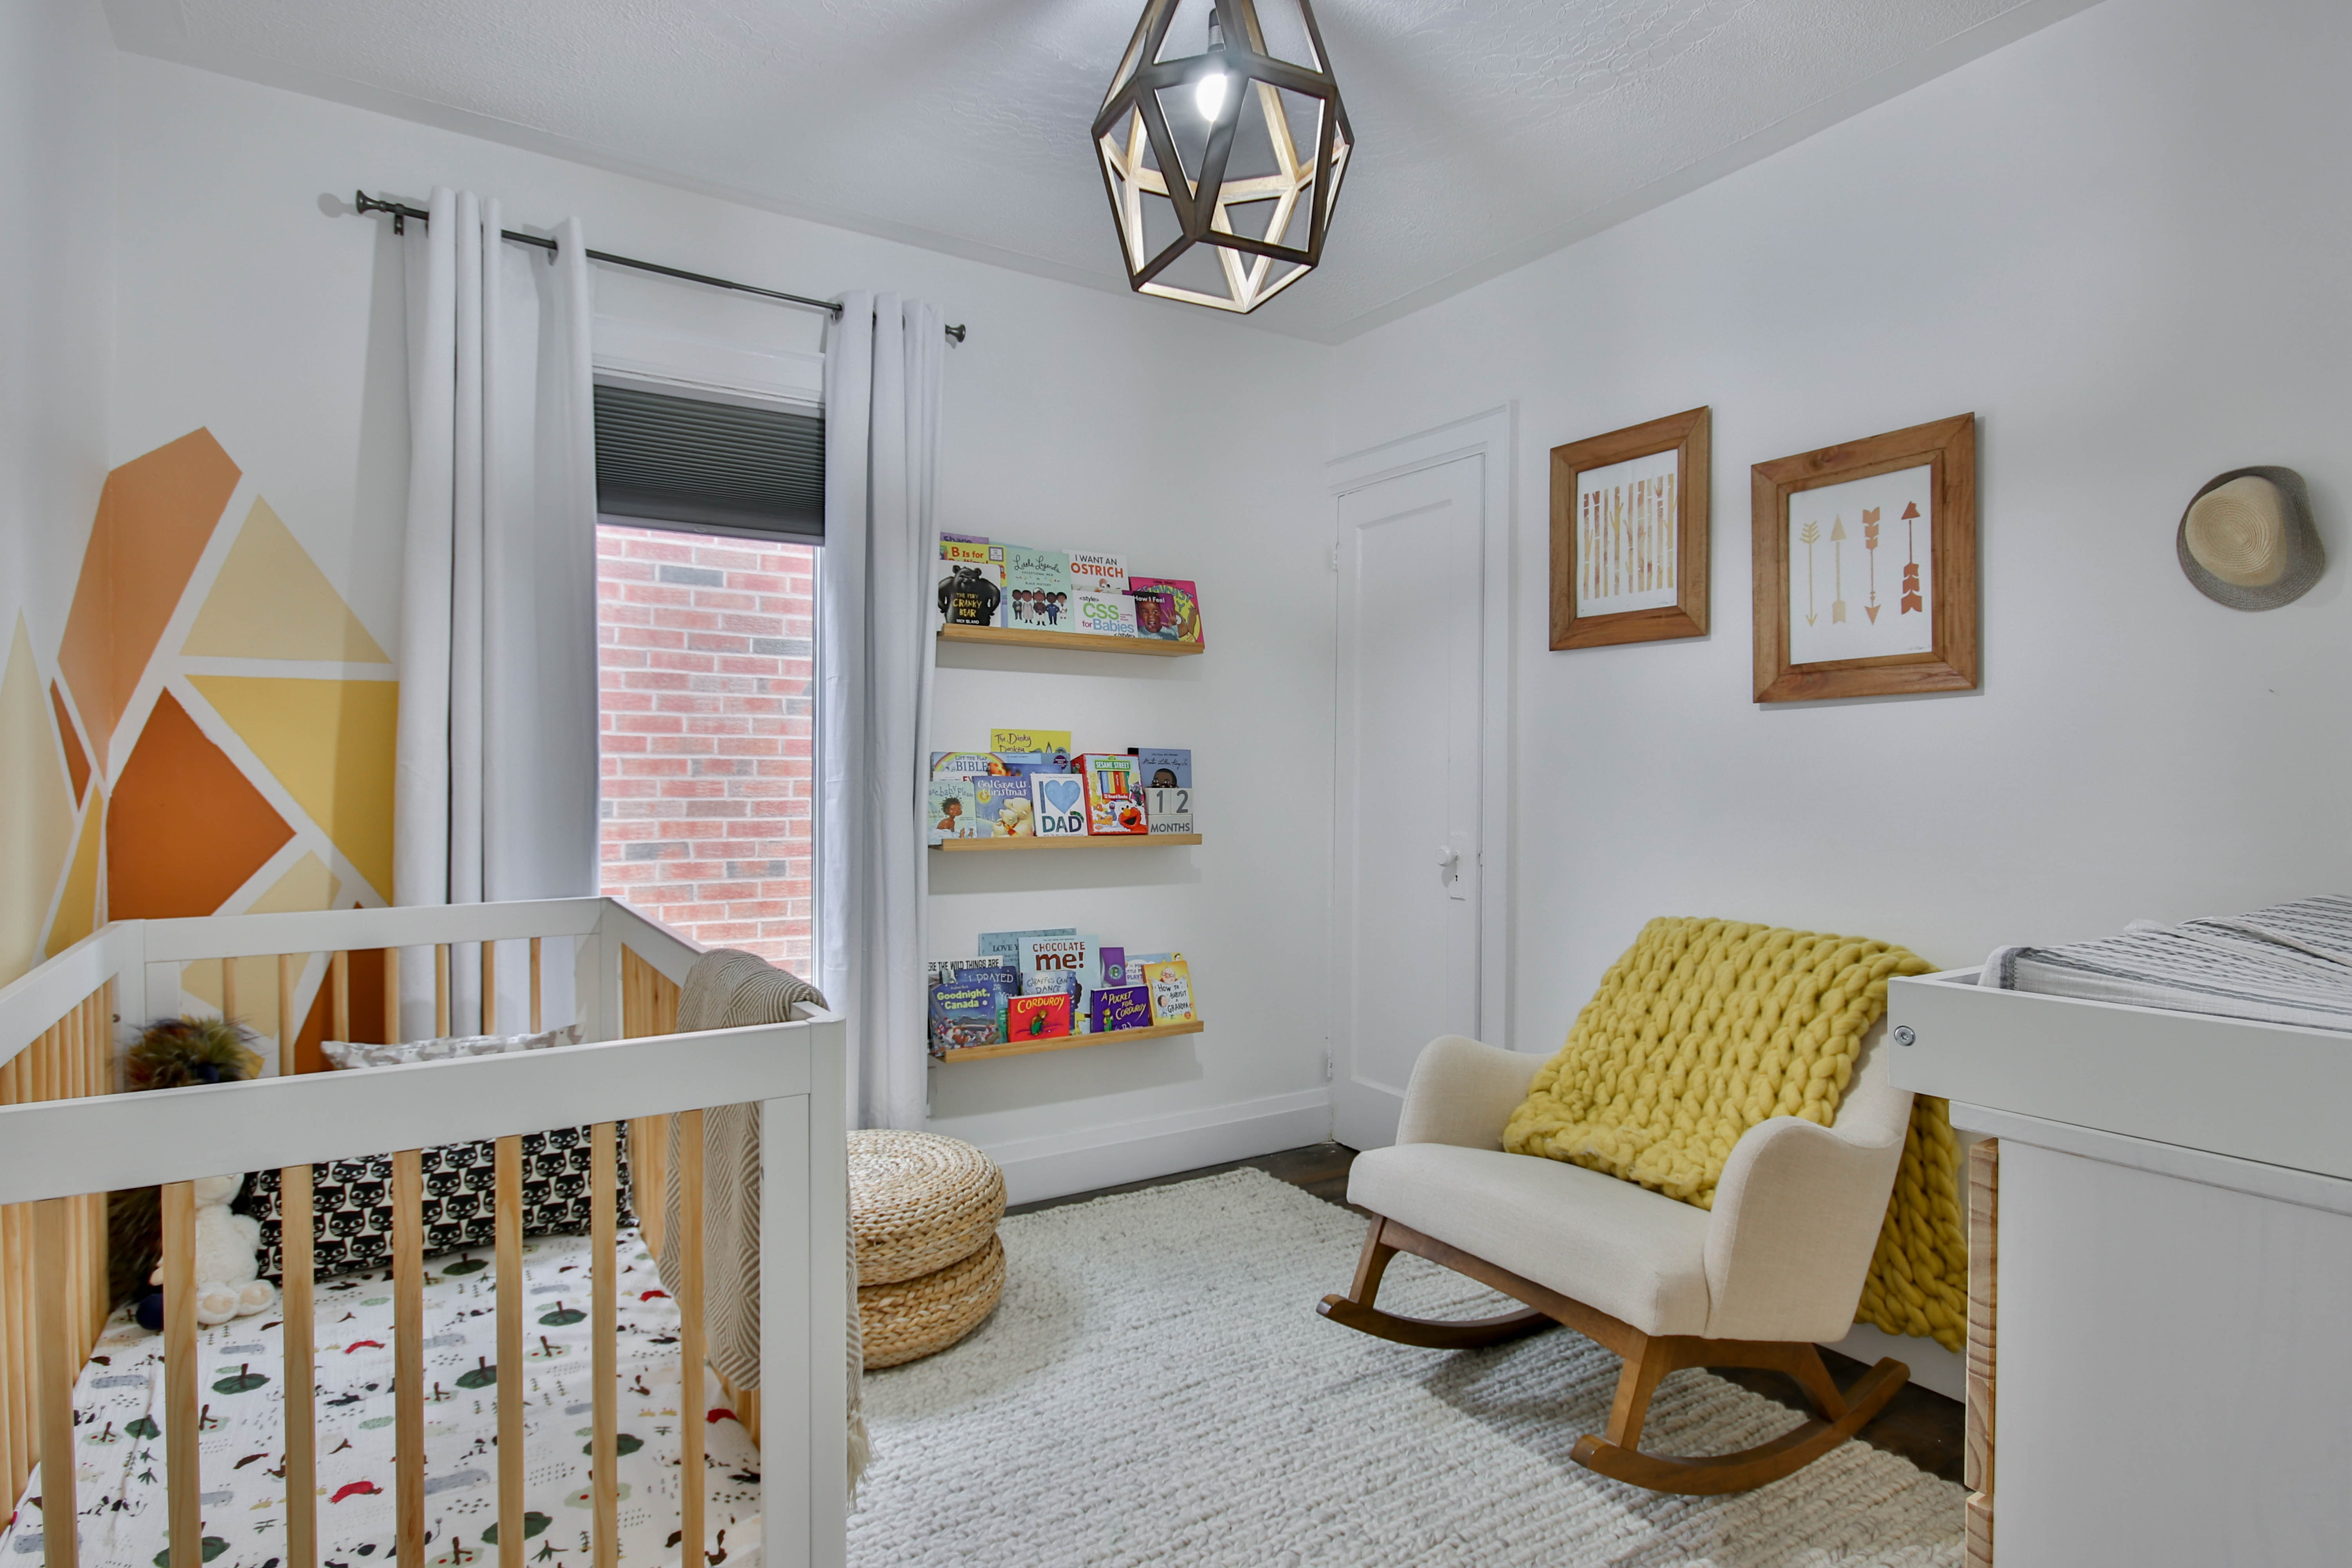 How to Prepare Your Apartment for a New Baby